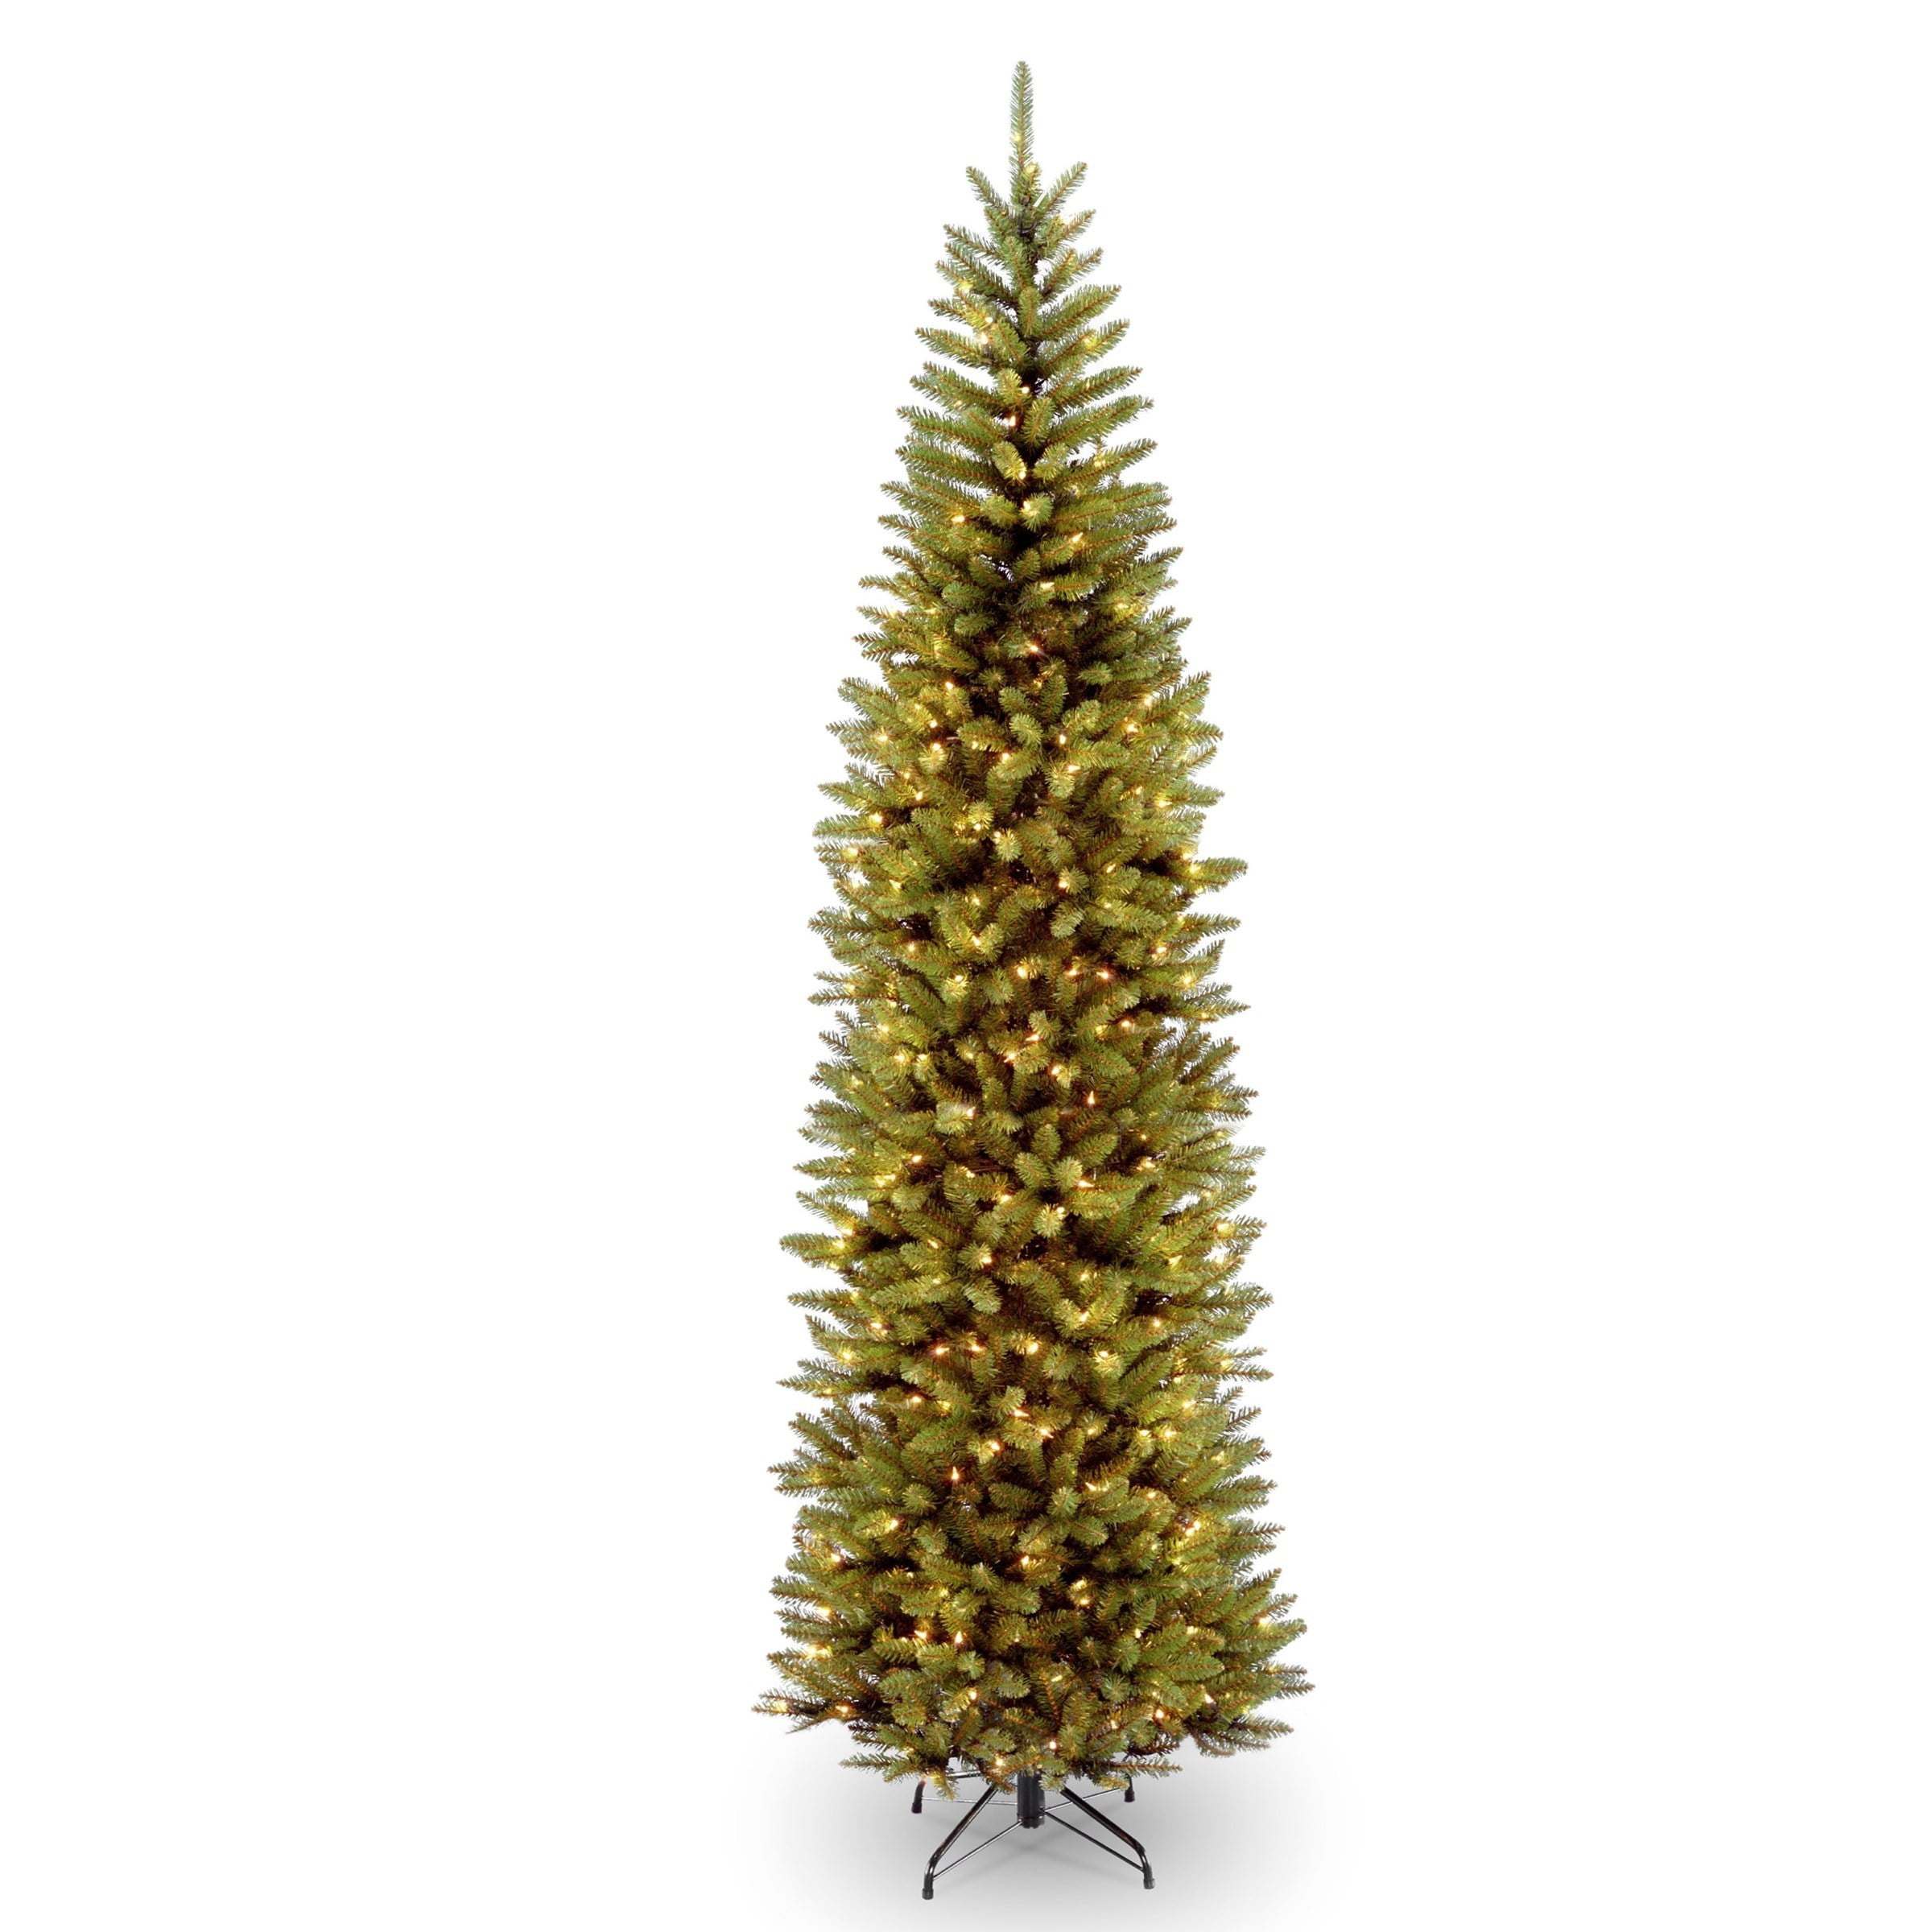 National Tree Company 10 ft. Kingswood Fir Pencil Tree with Clear Lights